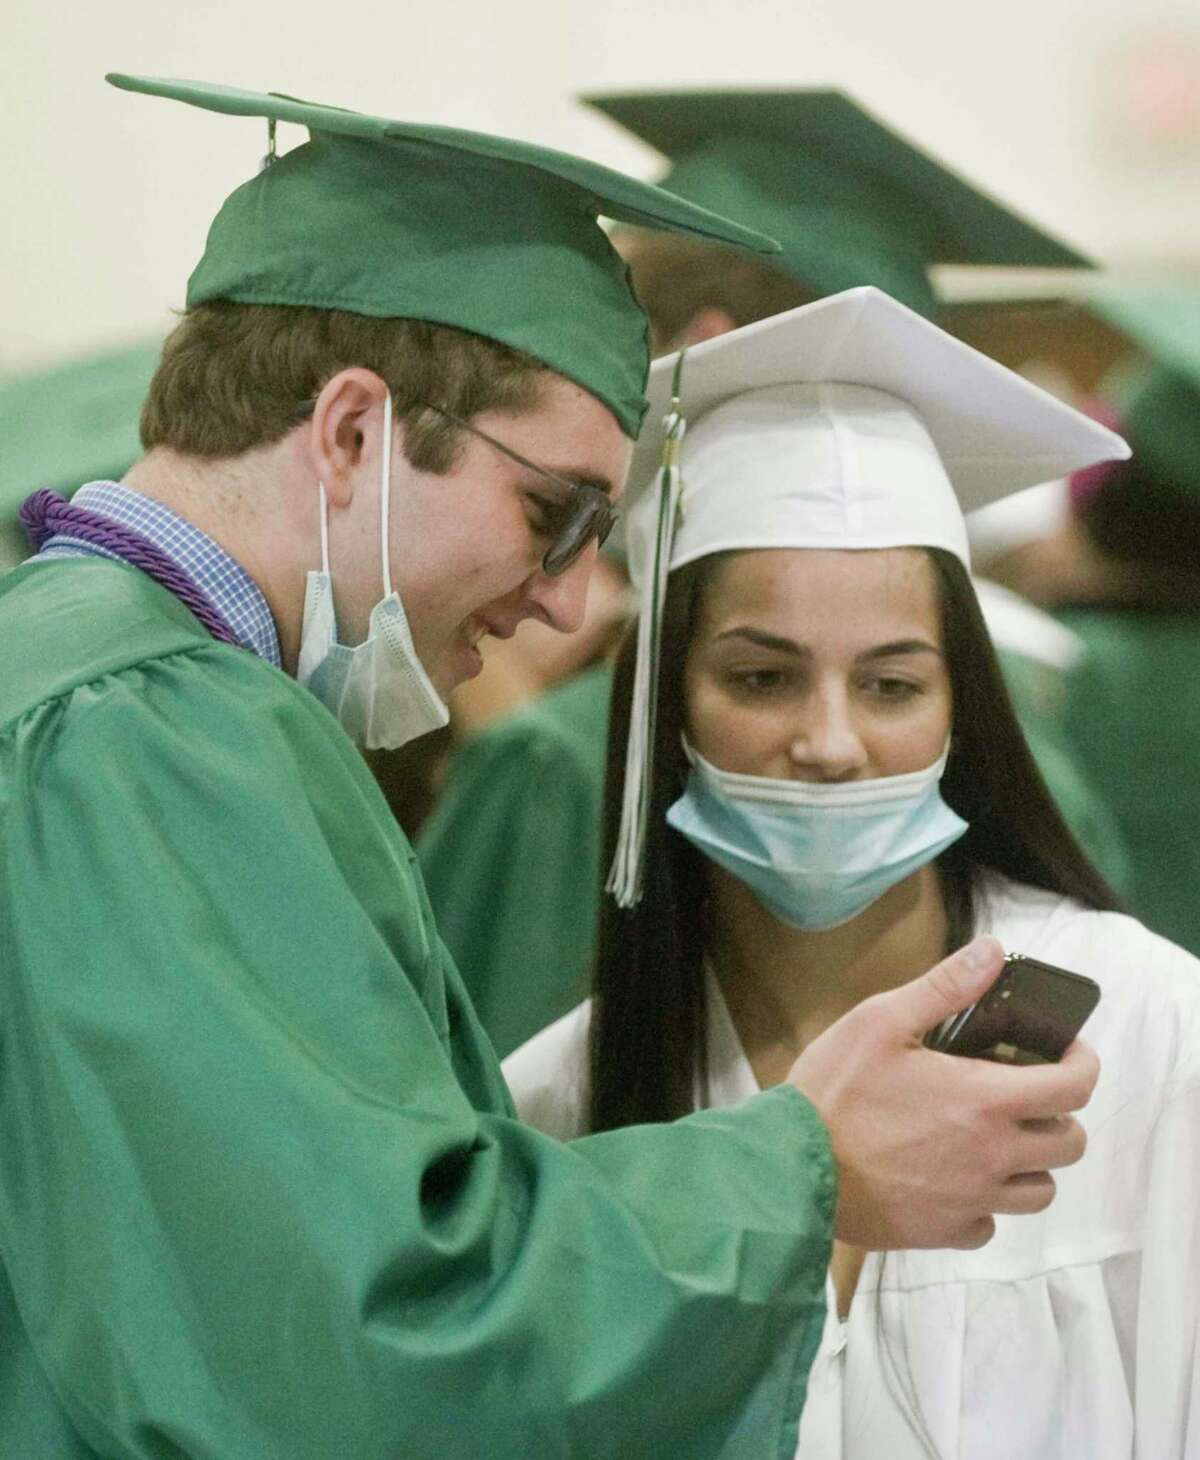 Daniel Rizvic and Thea Spinner check out a phone photo prior to the start of the New Milford High School graduation ceremony. Saturday, June 19, 2021